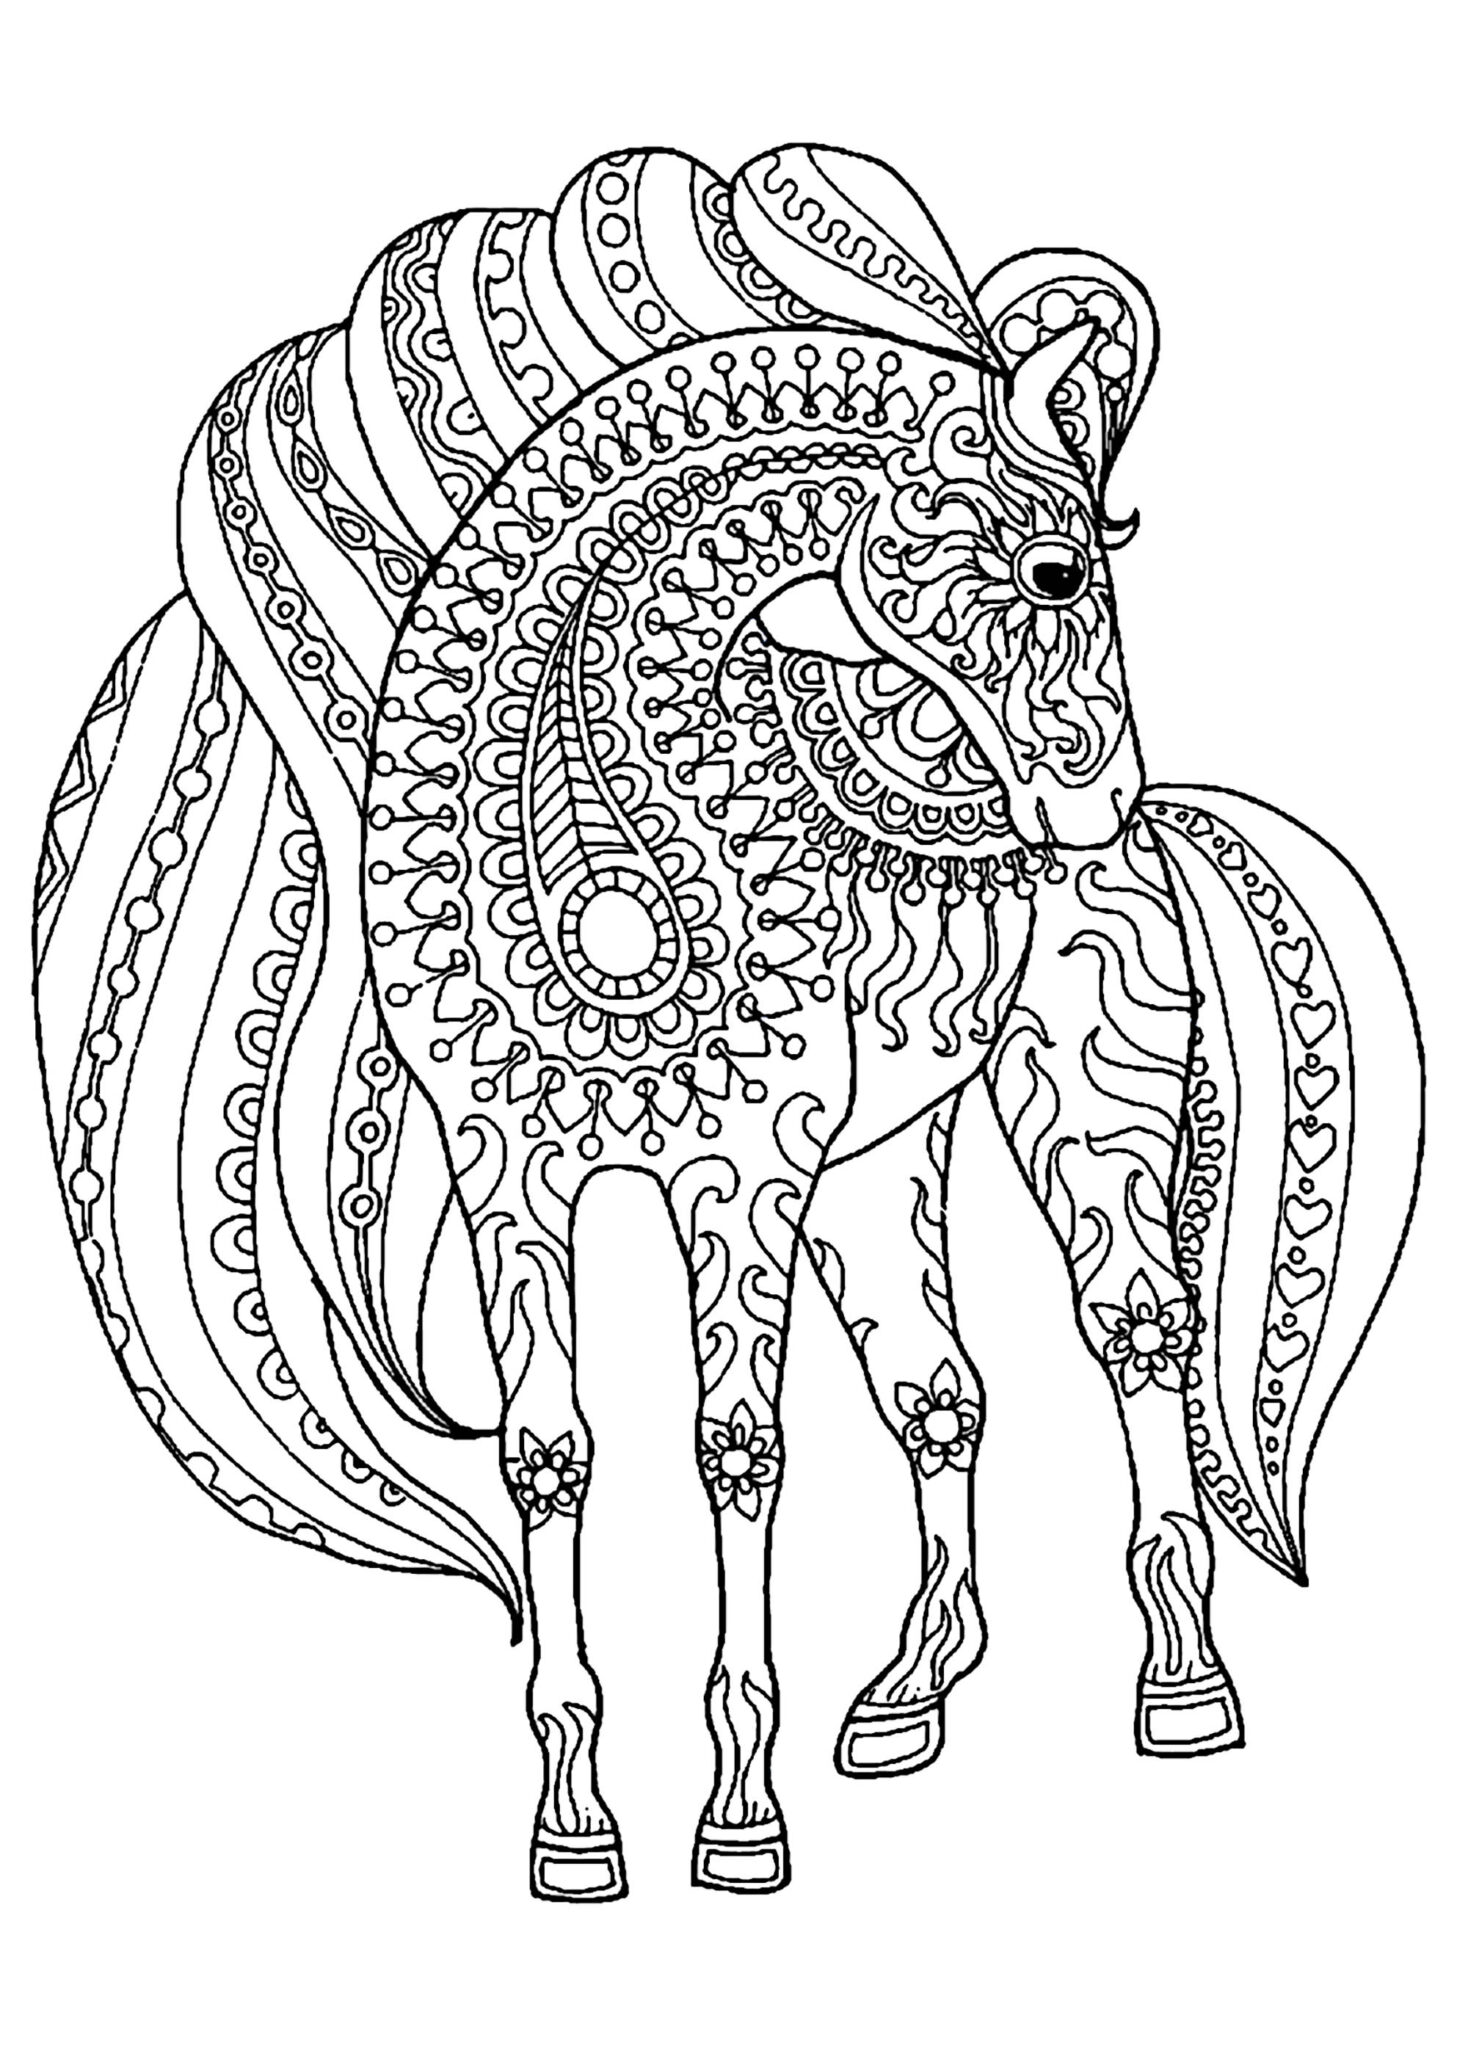 Horse Coloring Pages for Adults 1